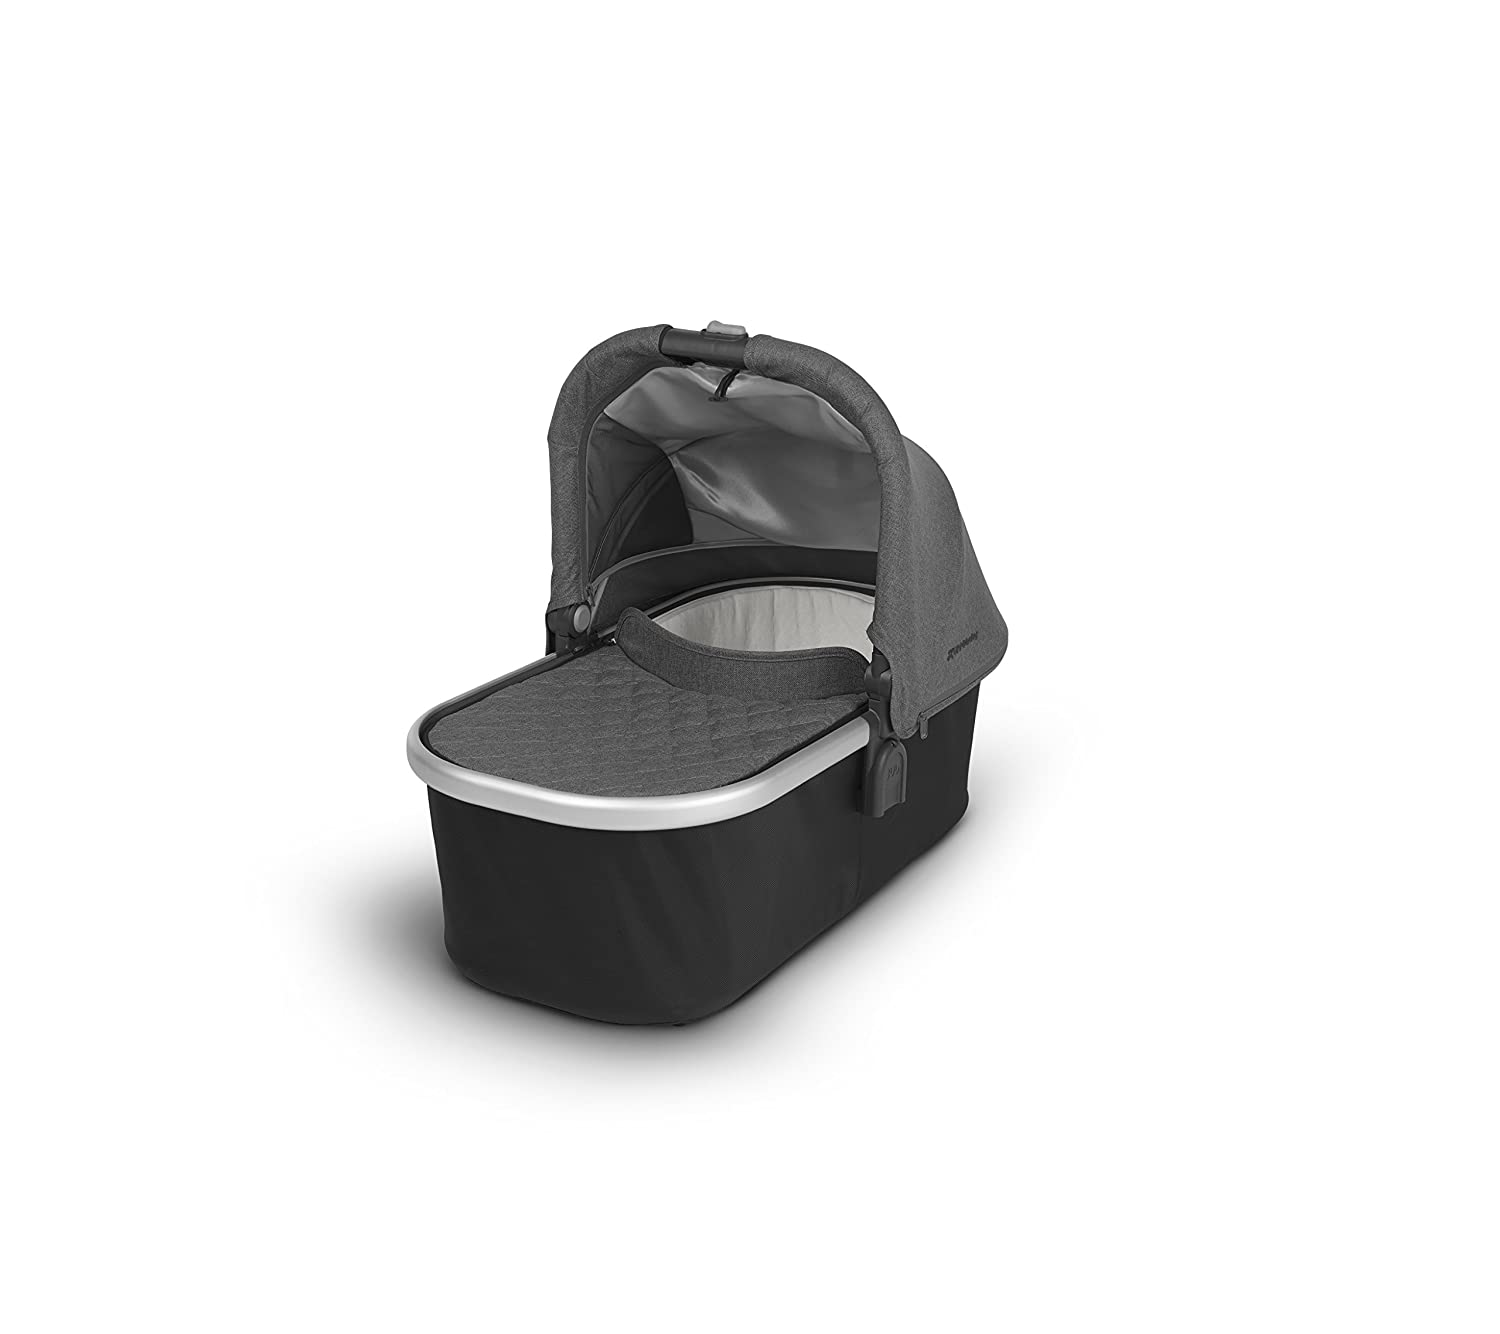 2018 UPPAbaby Bassinet - Henry (Blue Marl/Silver) 0918-BAS-US-HEN